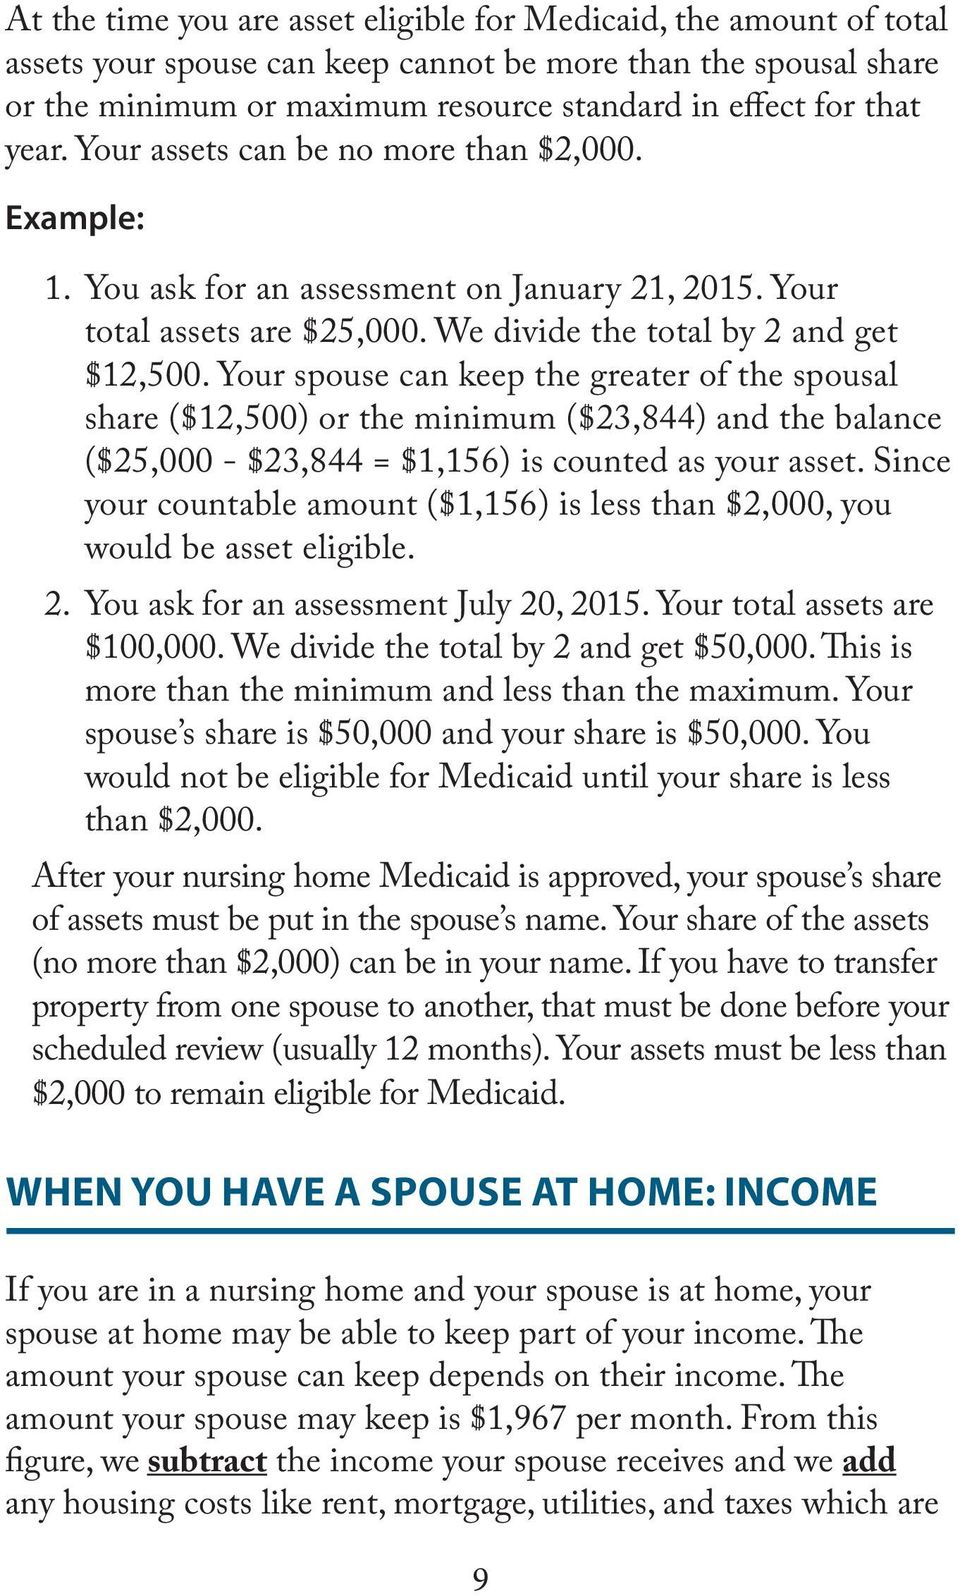 Your spouse can keep the greater of the spousal share ($12,500) or the minimum ($23,844) and the balance ($25,000 - $23,844 = $1,156) is counted as your asset.